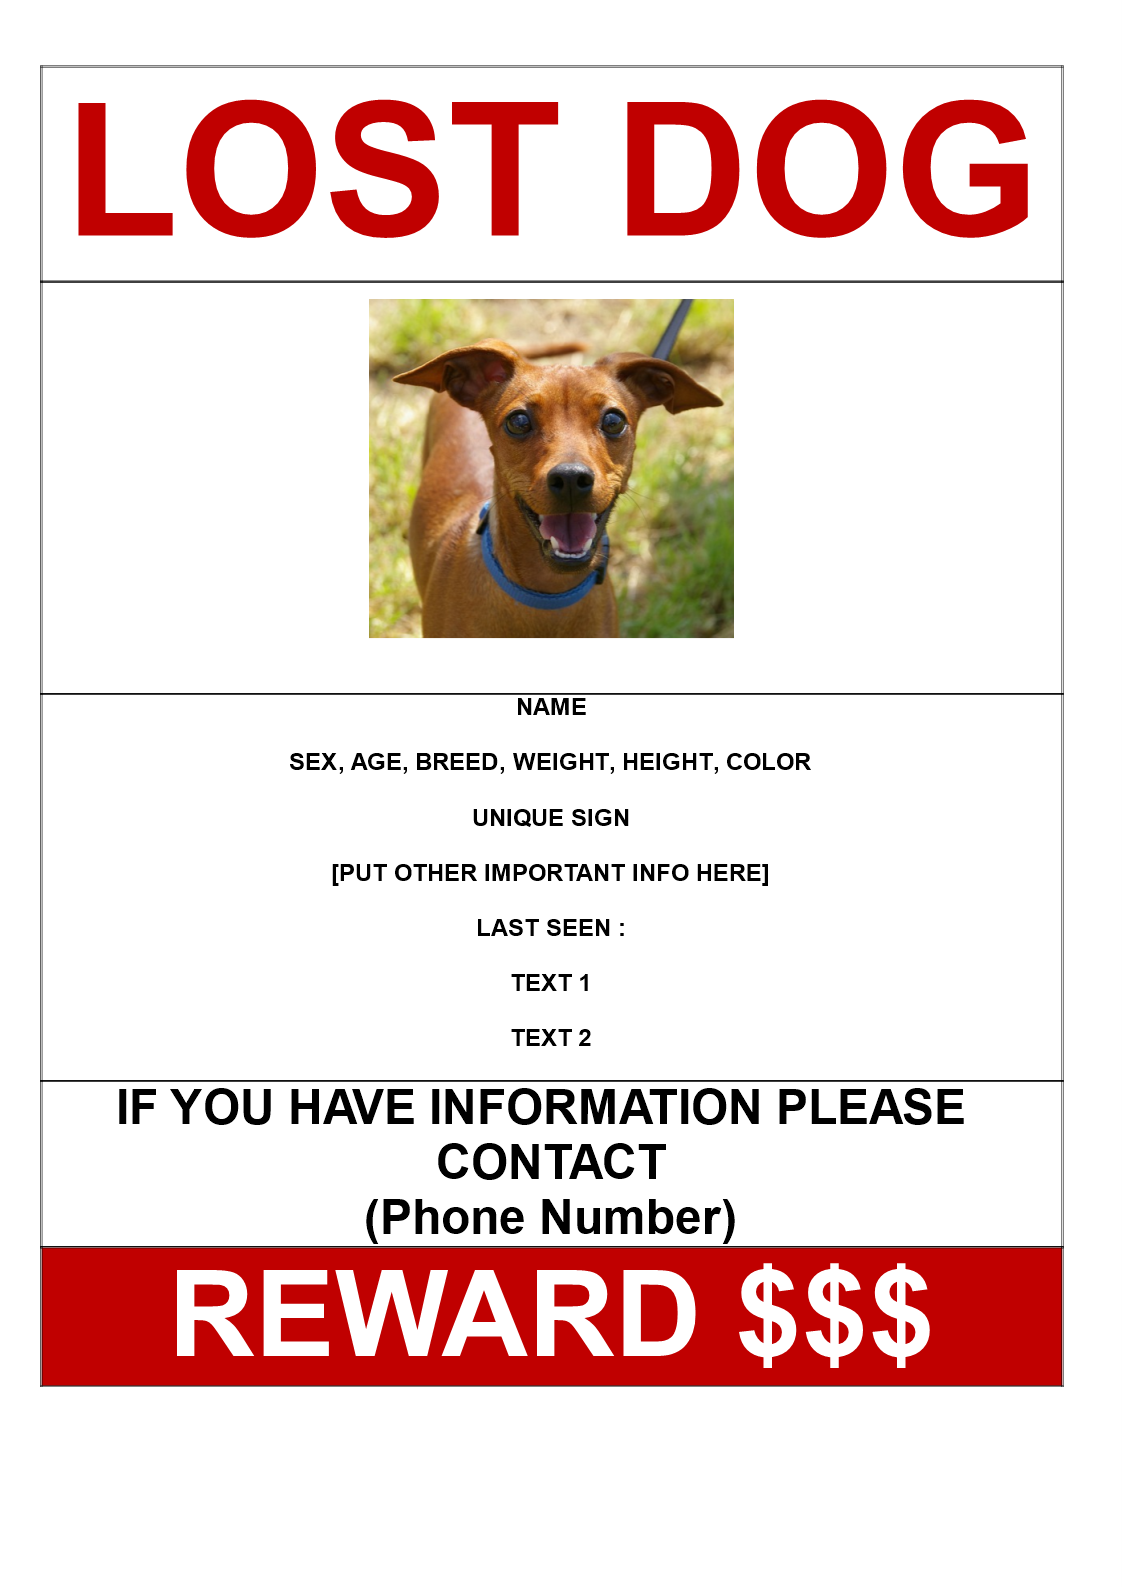 Missing Dog Poster with reward A3 size Missing Dog Poster A3 – Lost Dog Poster Template